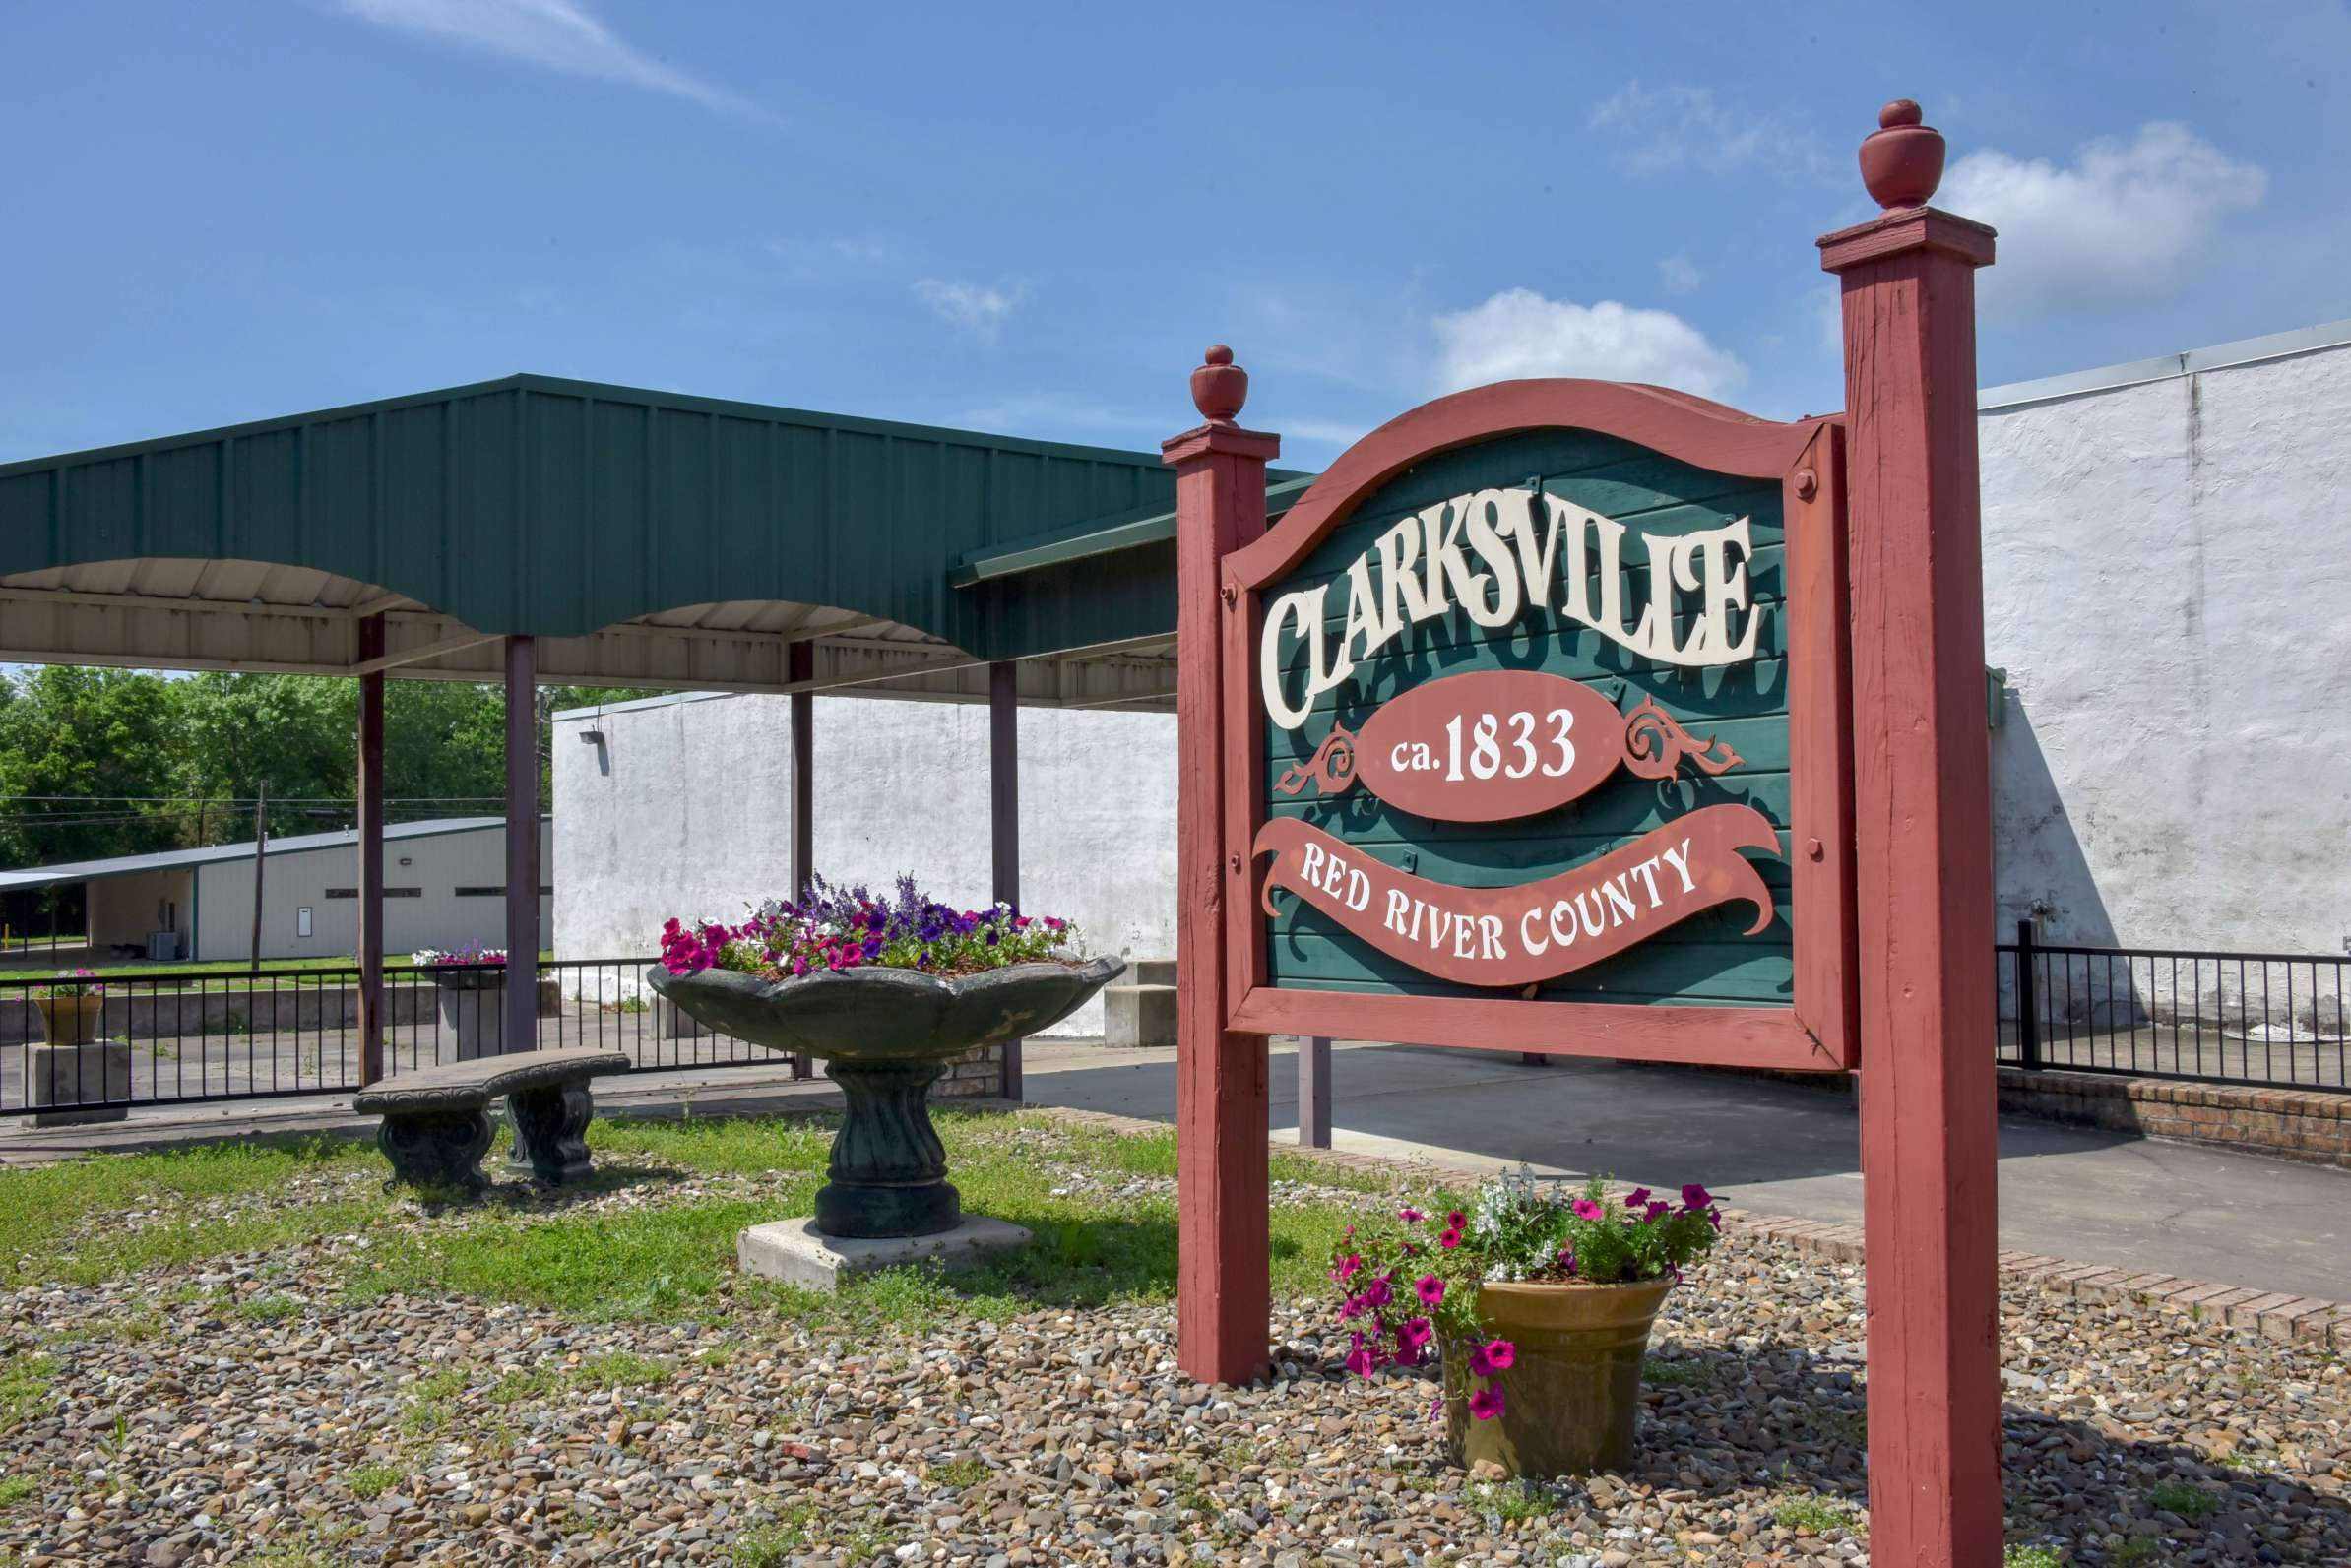 welcome to clarksville texas sign